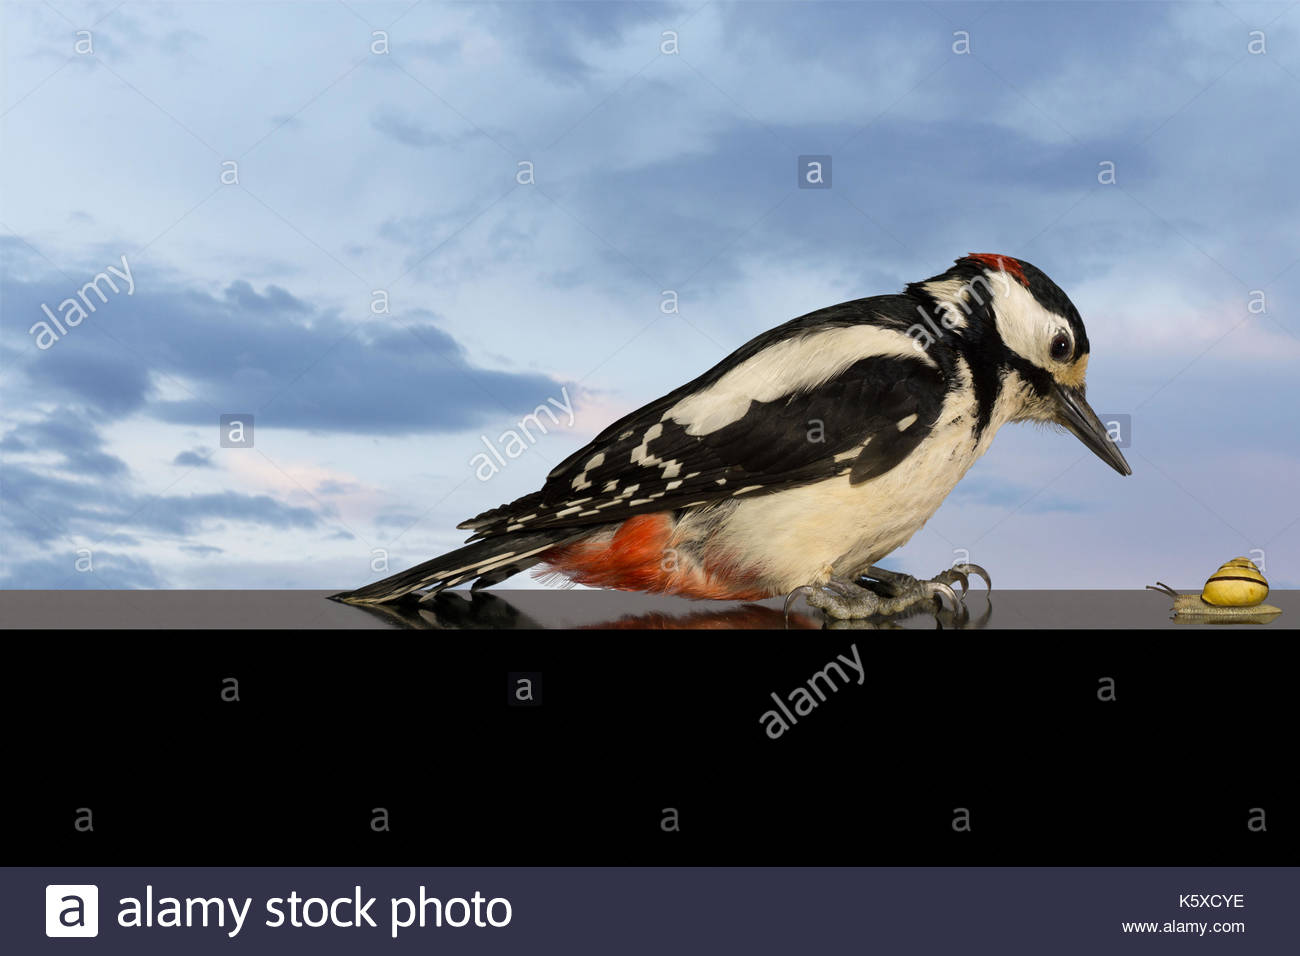 Woodpecker and the Snail. Specht und die Schnecke. - Stock Image